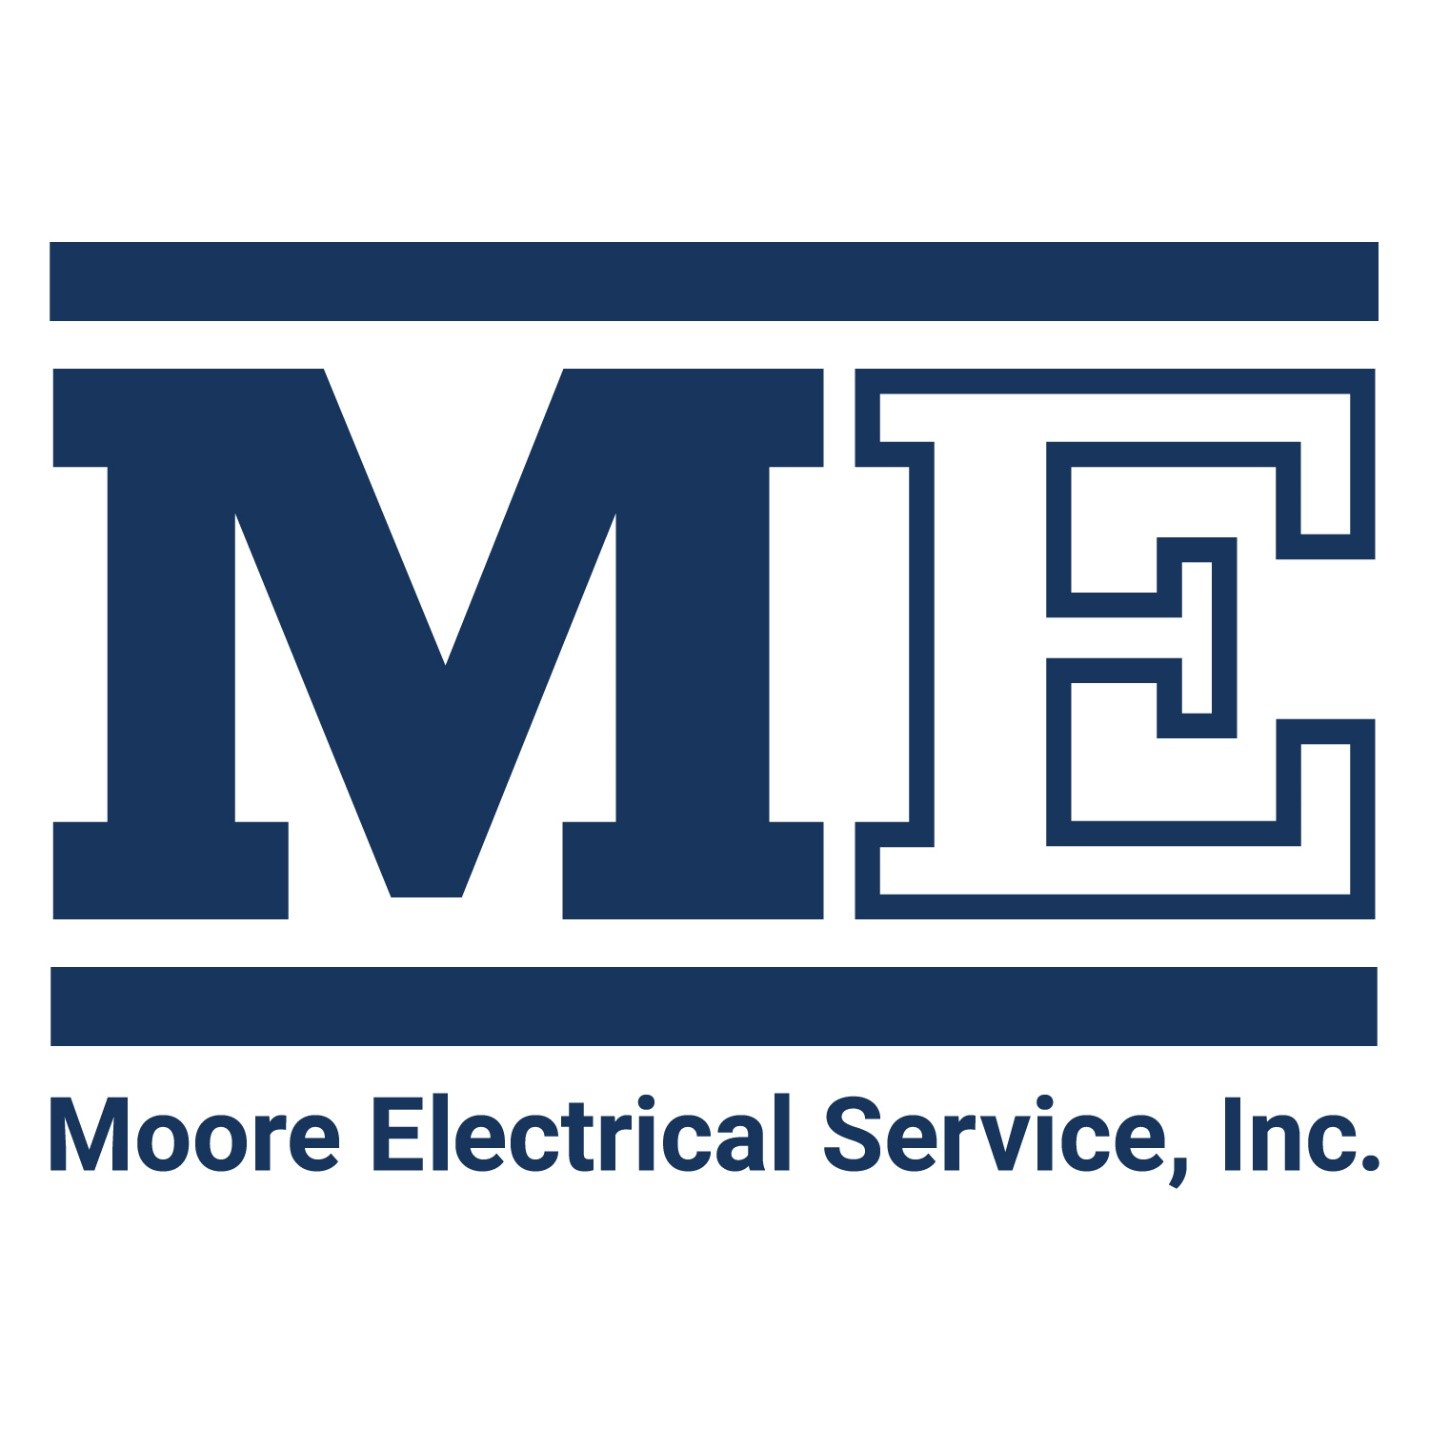 Moore Electrical